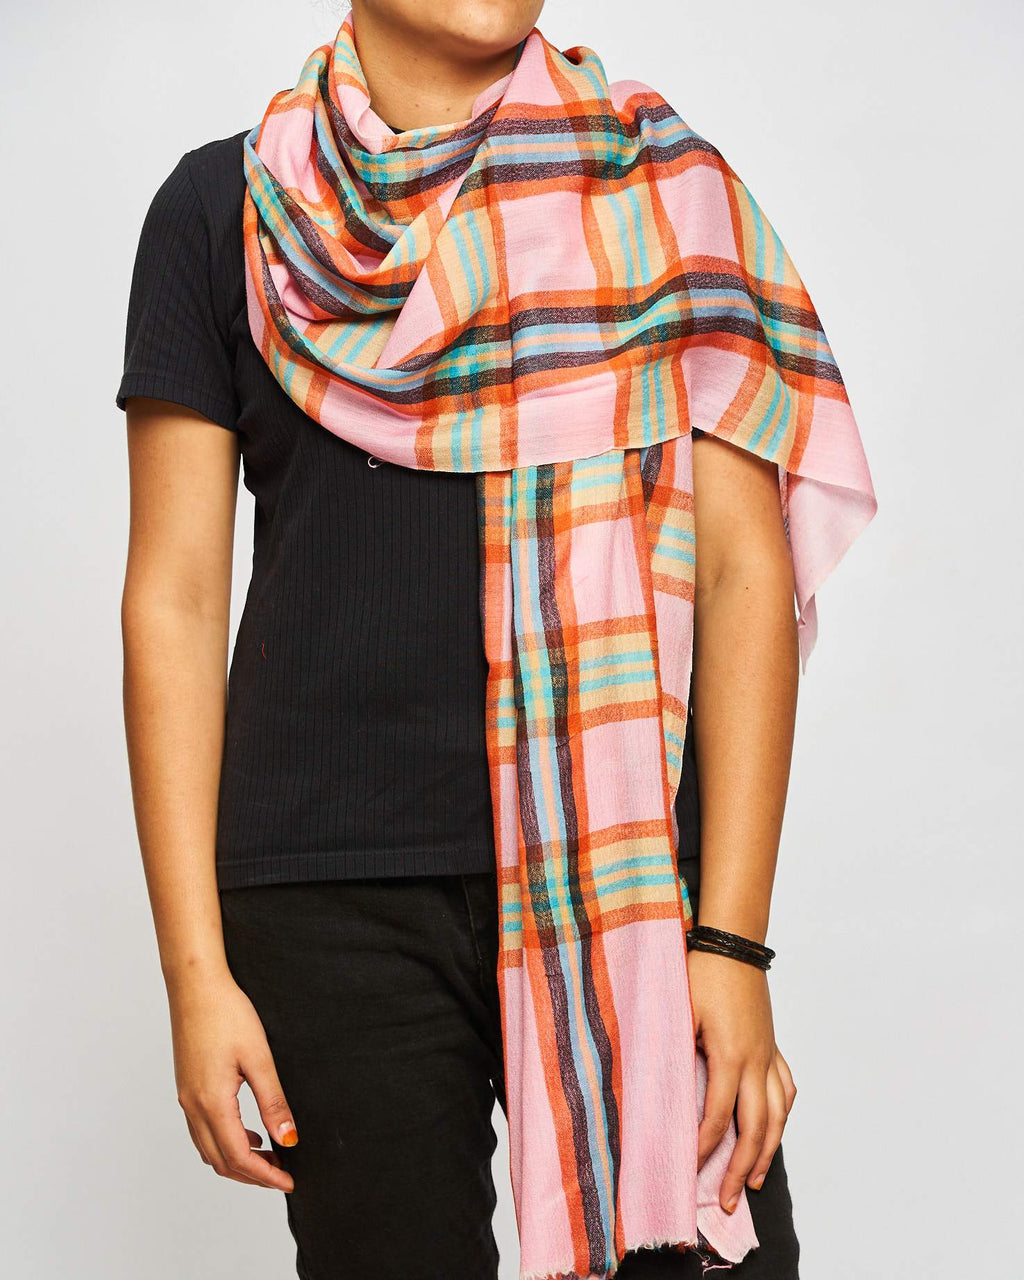 Cashmere - Large Check Pink/Orange